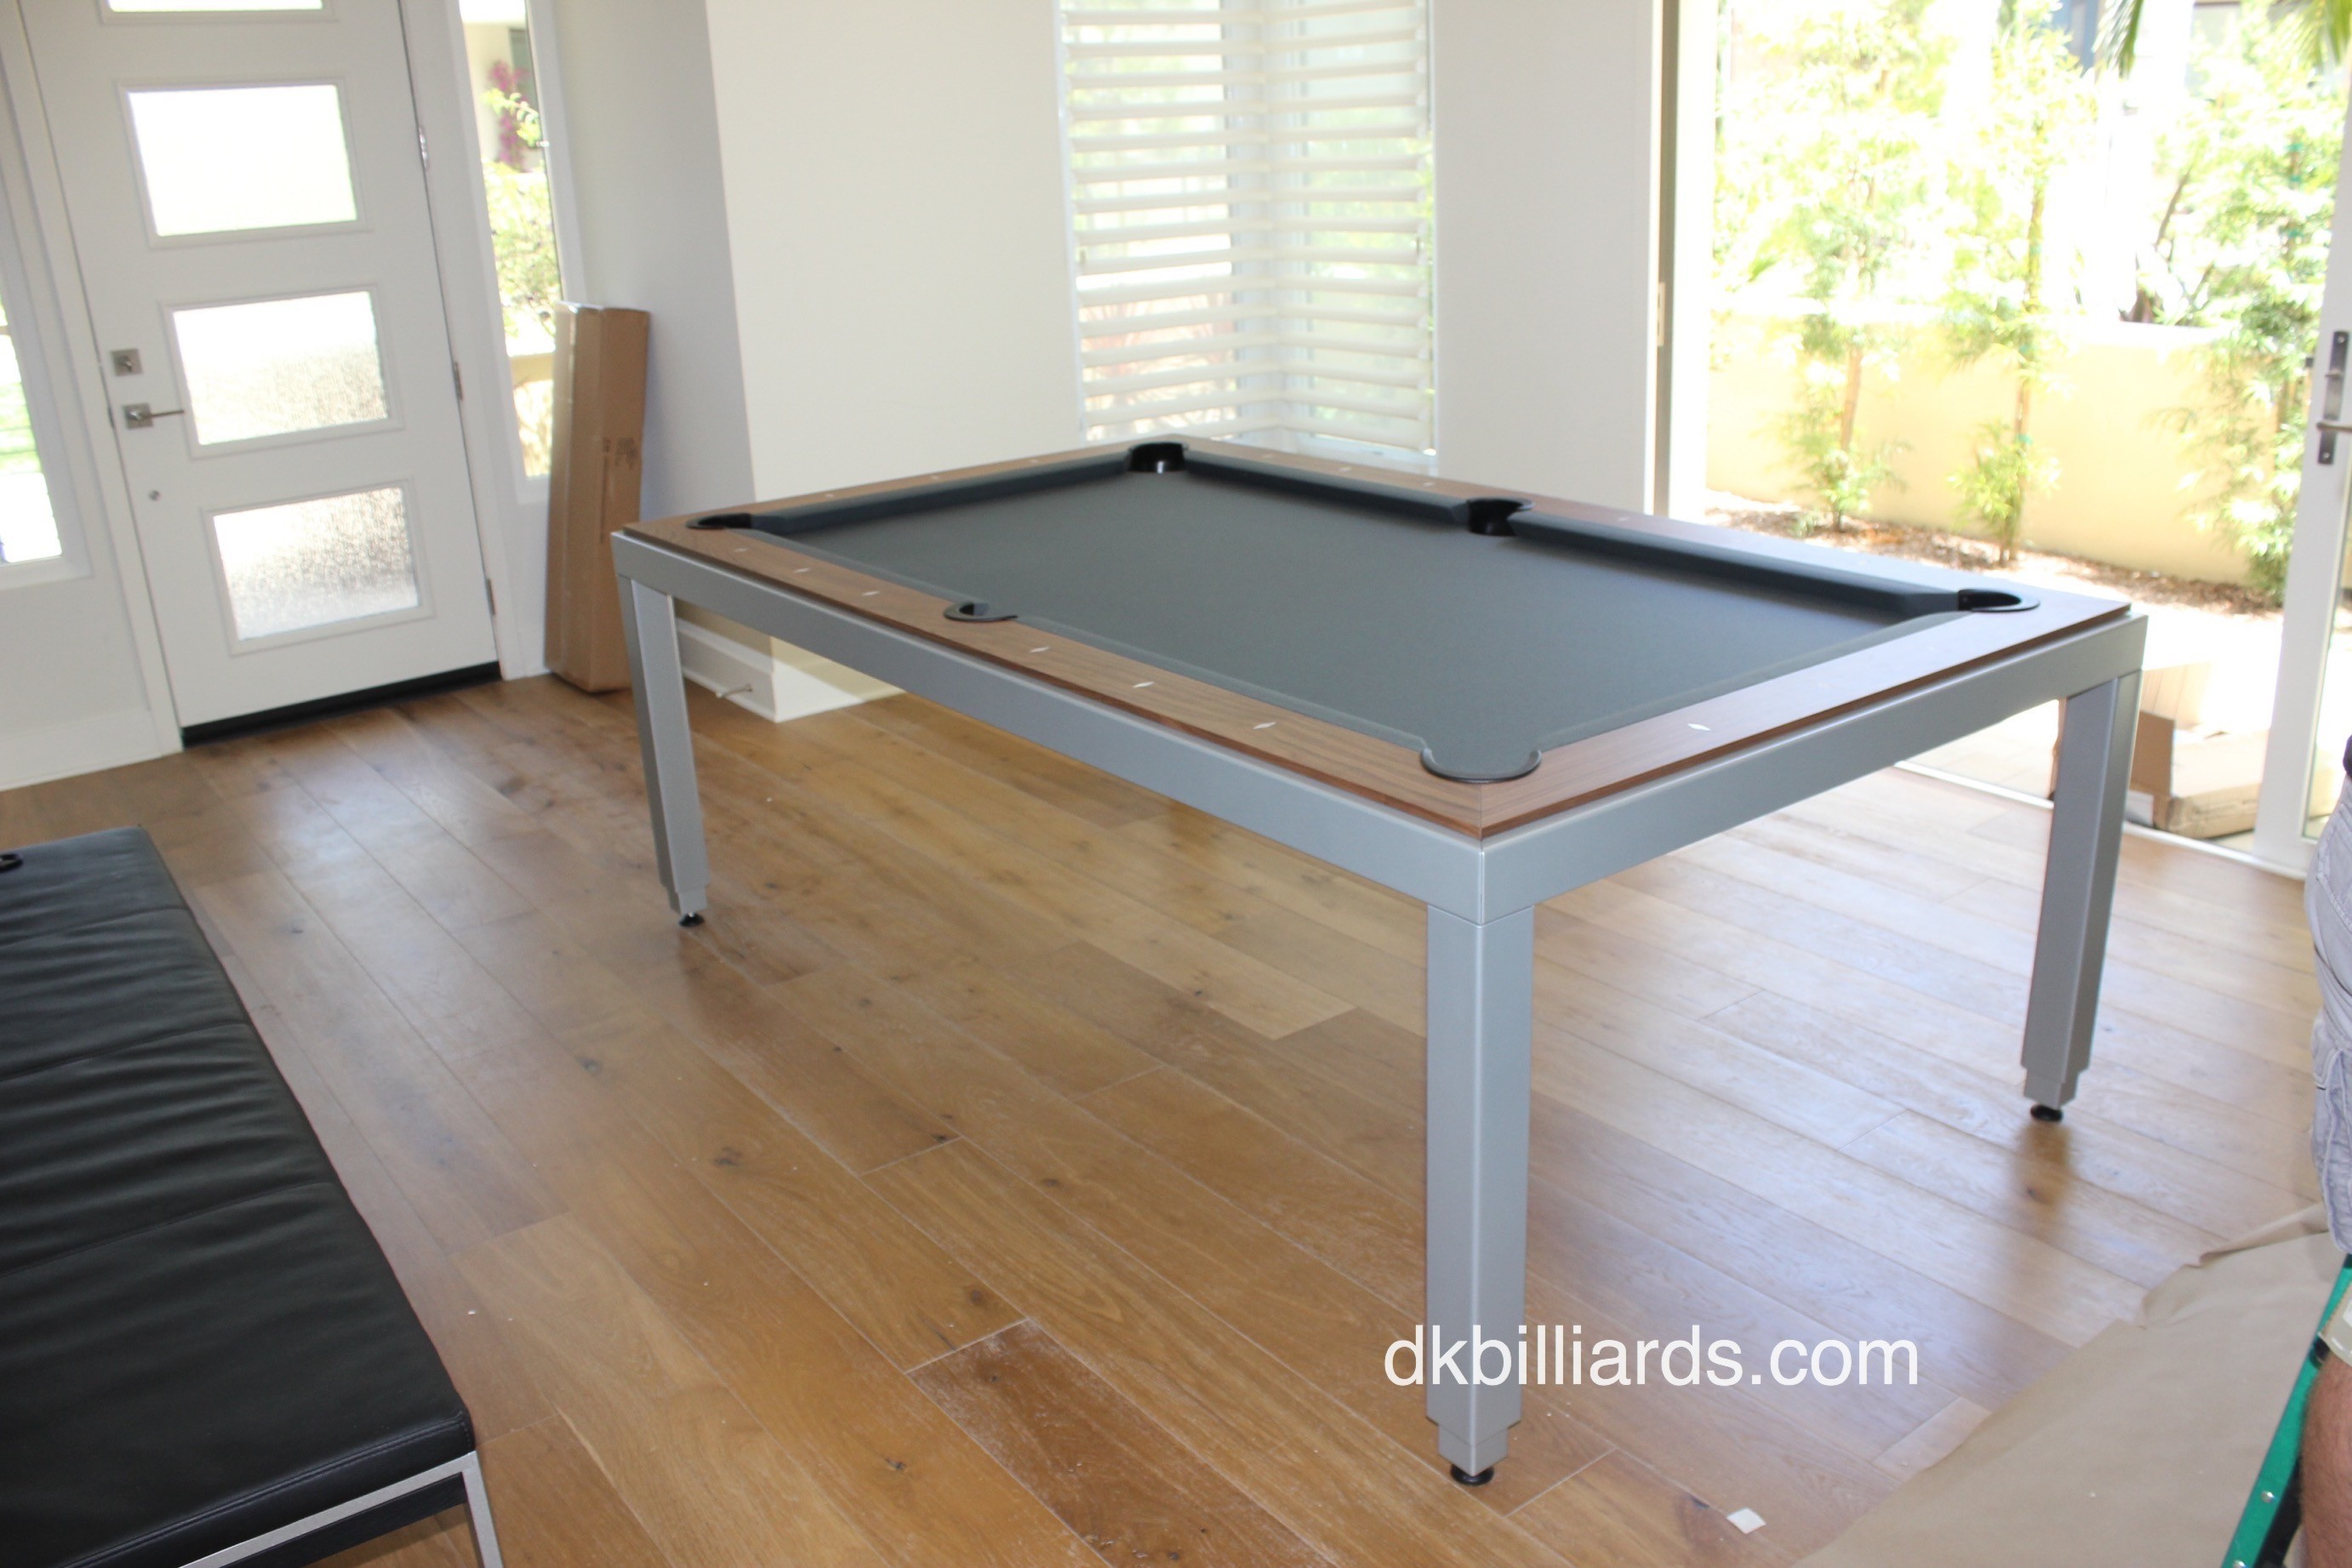 The Convertible Aramith Fusion Is A Modern Designed Dining Table That  Converts Quickly And Easily To A Pool Table. The Adjustable Height Keeps  The Billiard ...